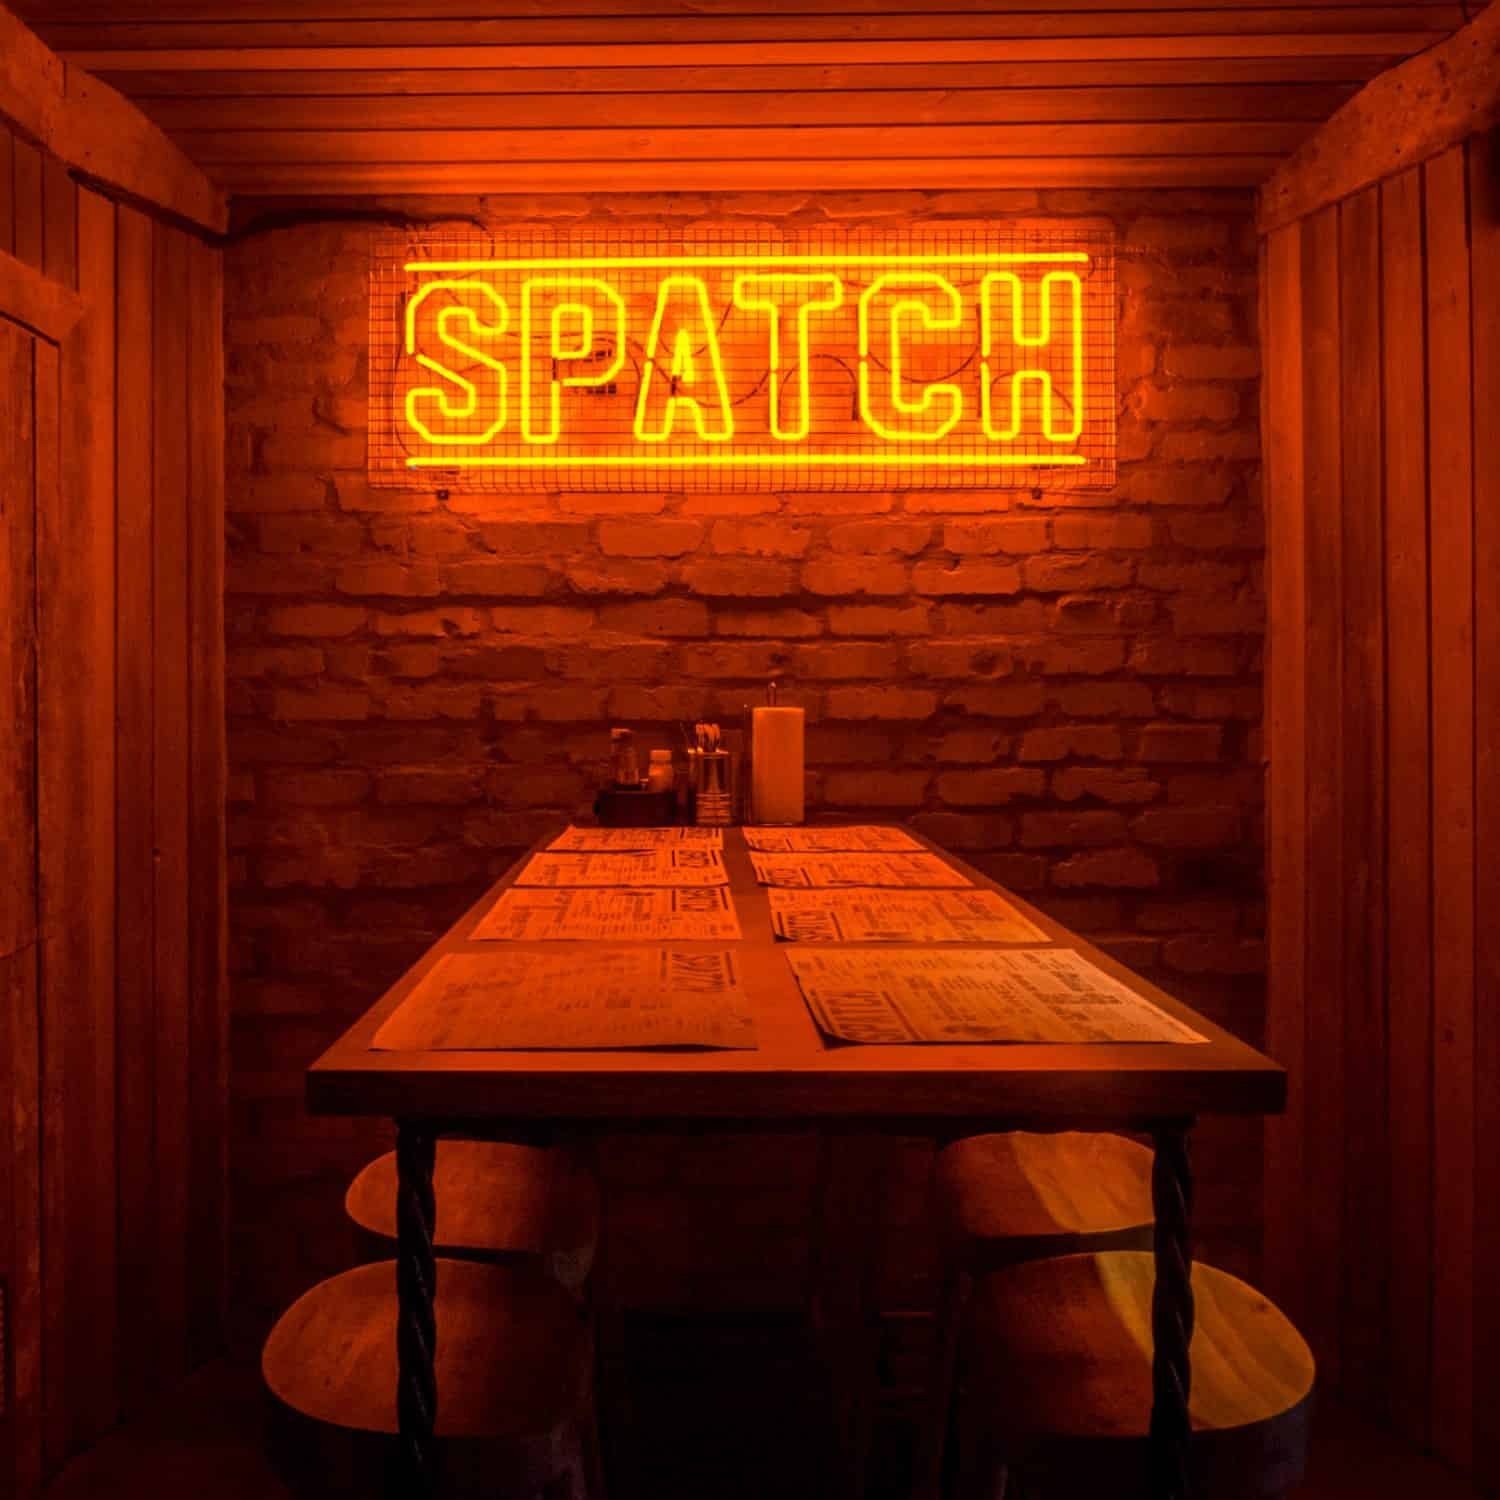 Spatch